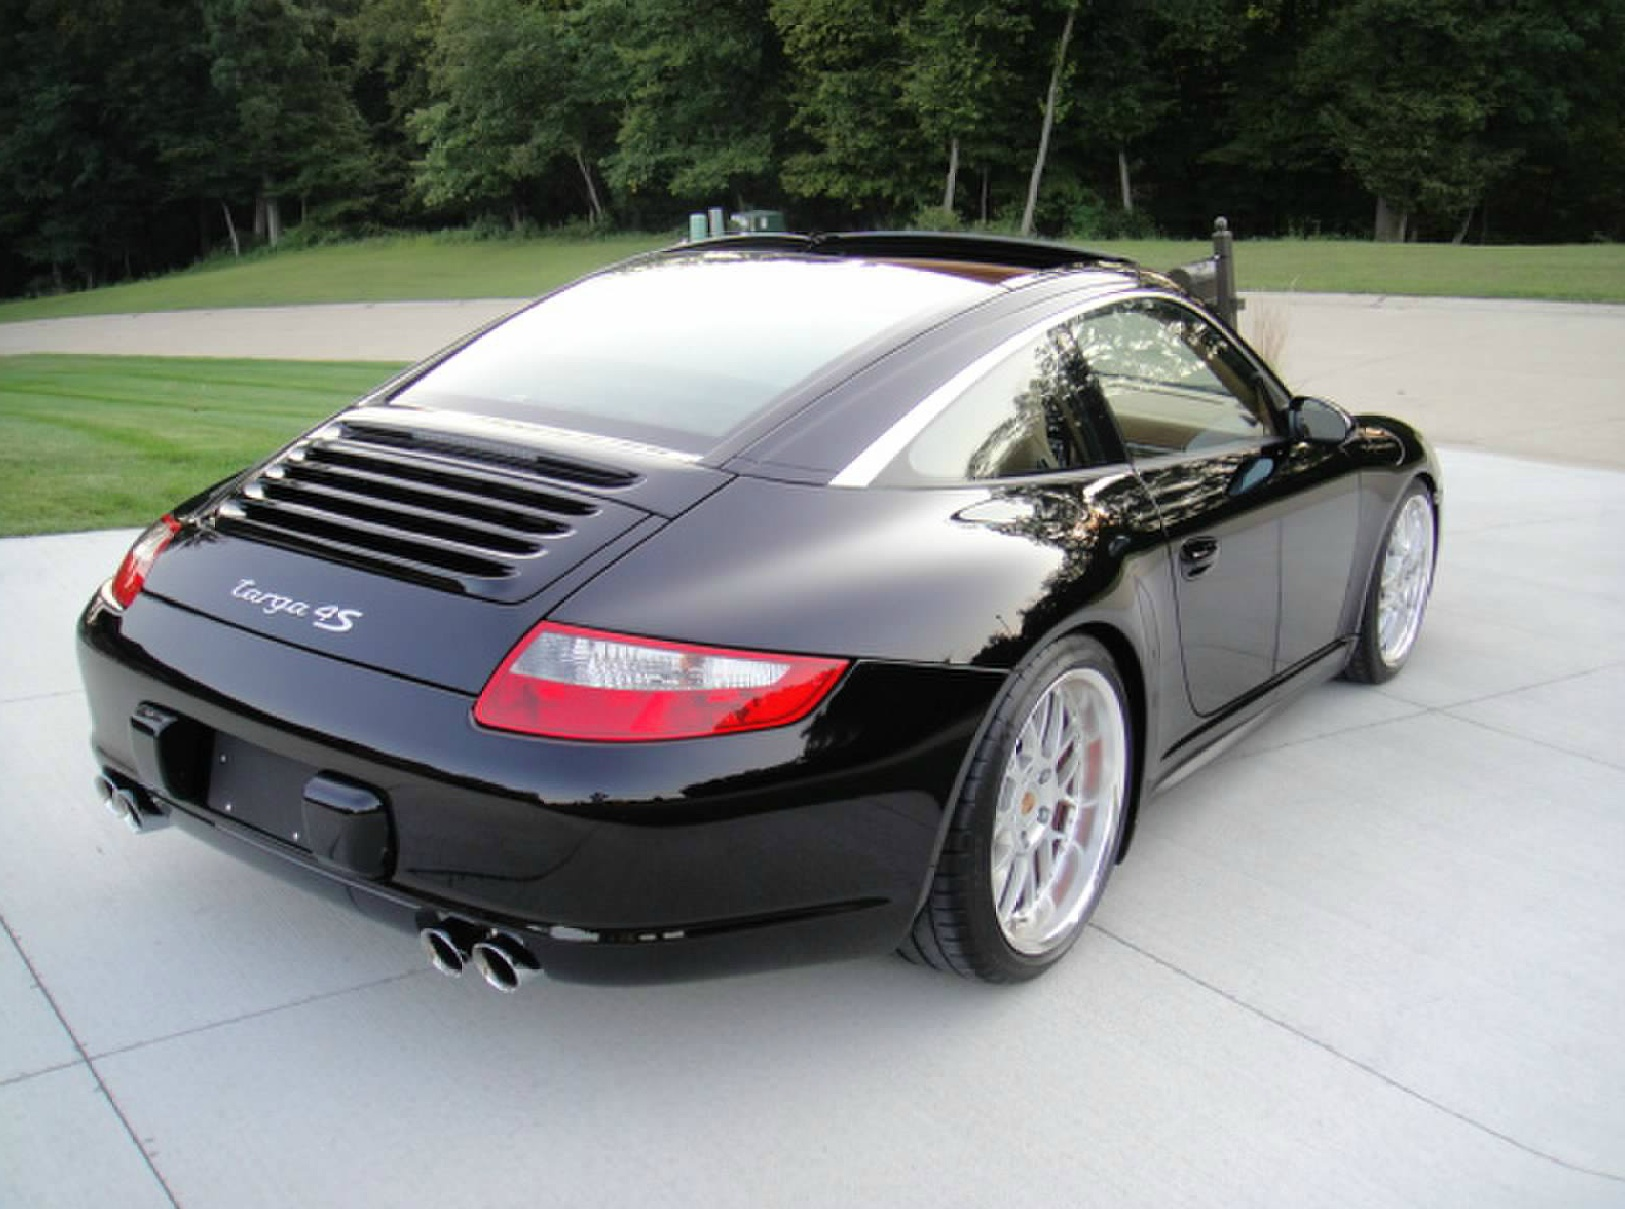 2007 Porsche 911 Targa 4s German Cars For Sale Blog